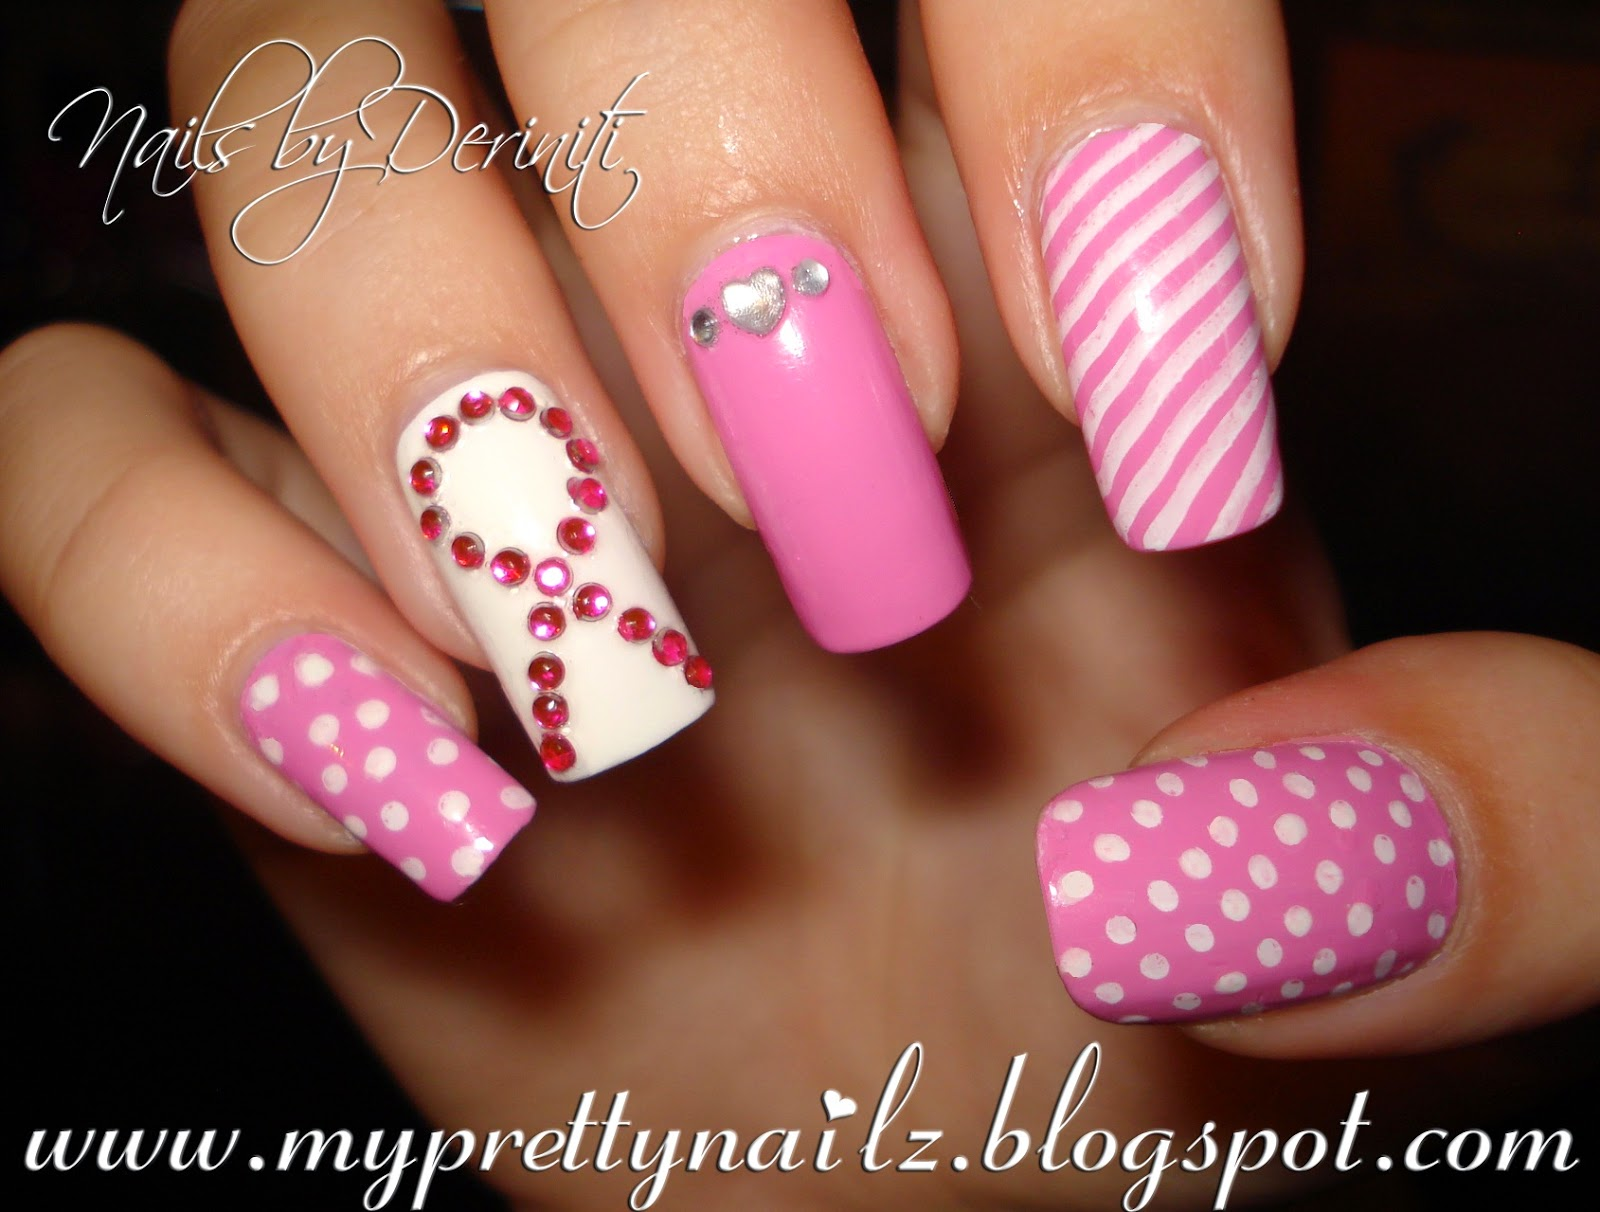 Breast cancer awareness nail art designs prinsesfo Gallery